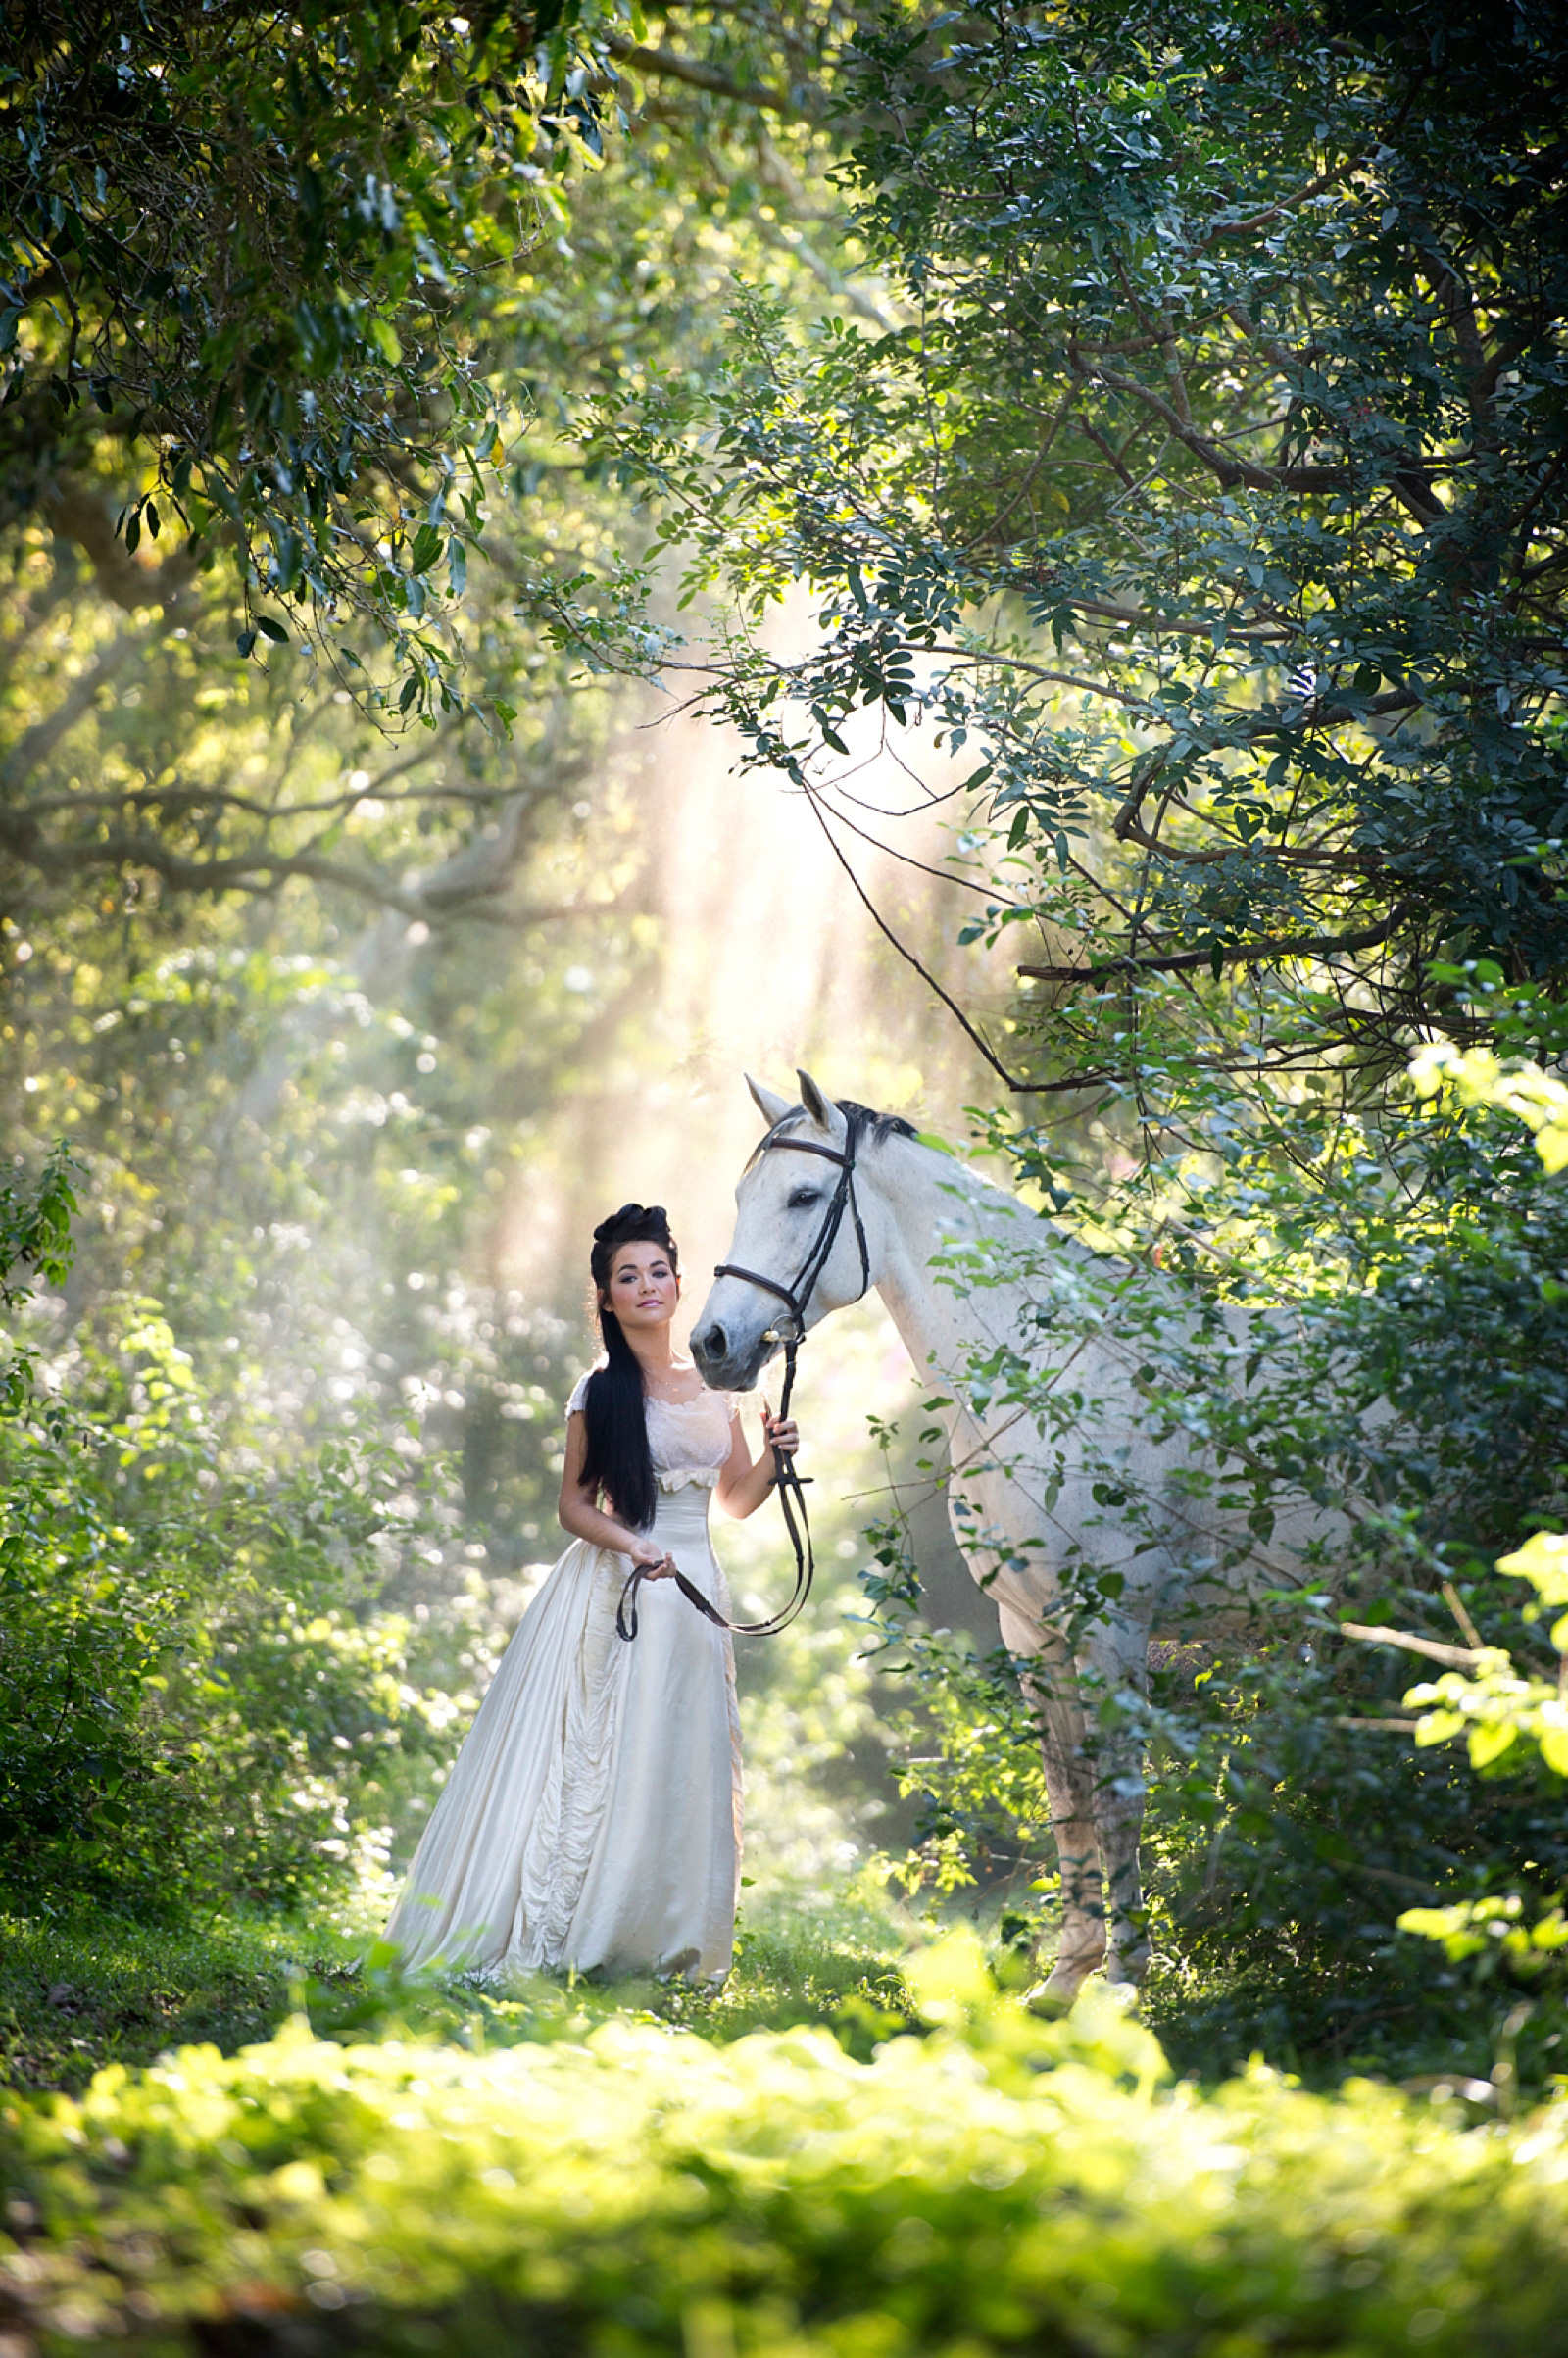 Girl in white dress with horse in amazing light